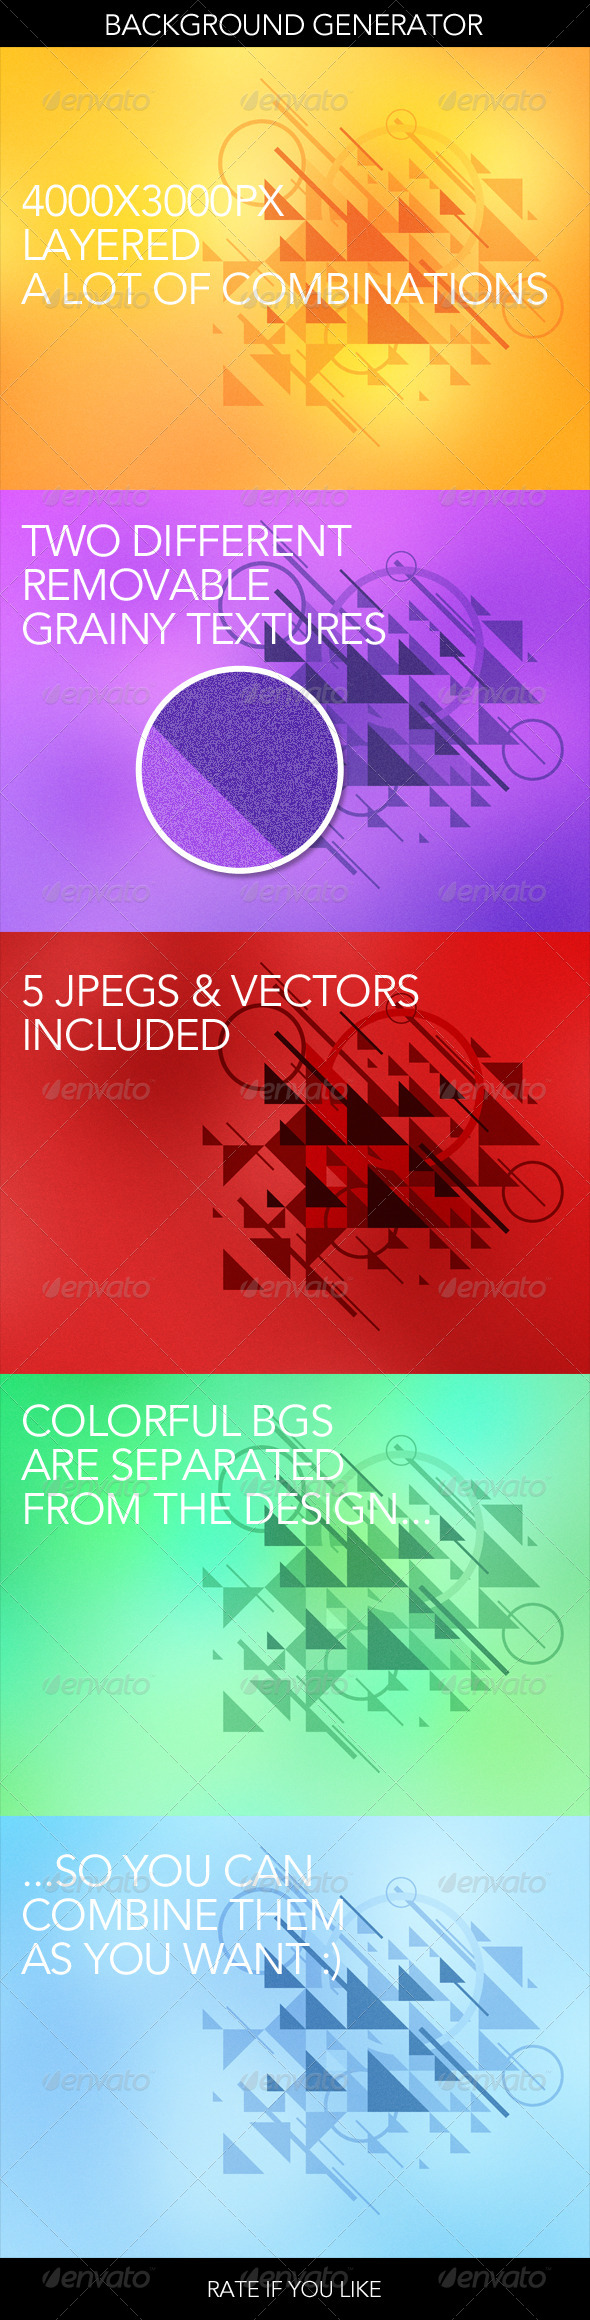 Abstract Background Graphics Generator - Abstract Backgrounds